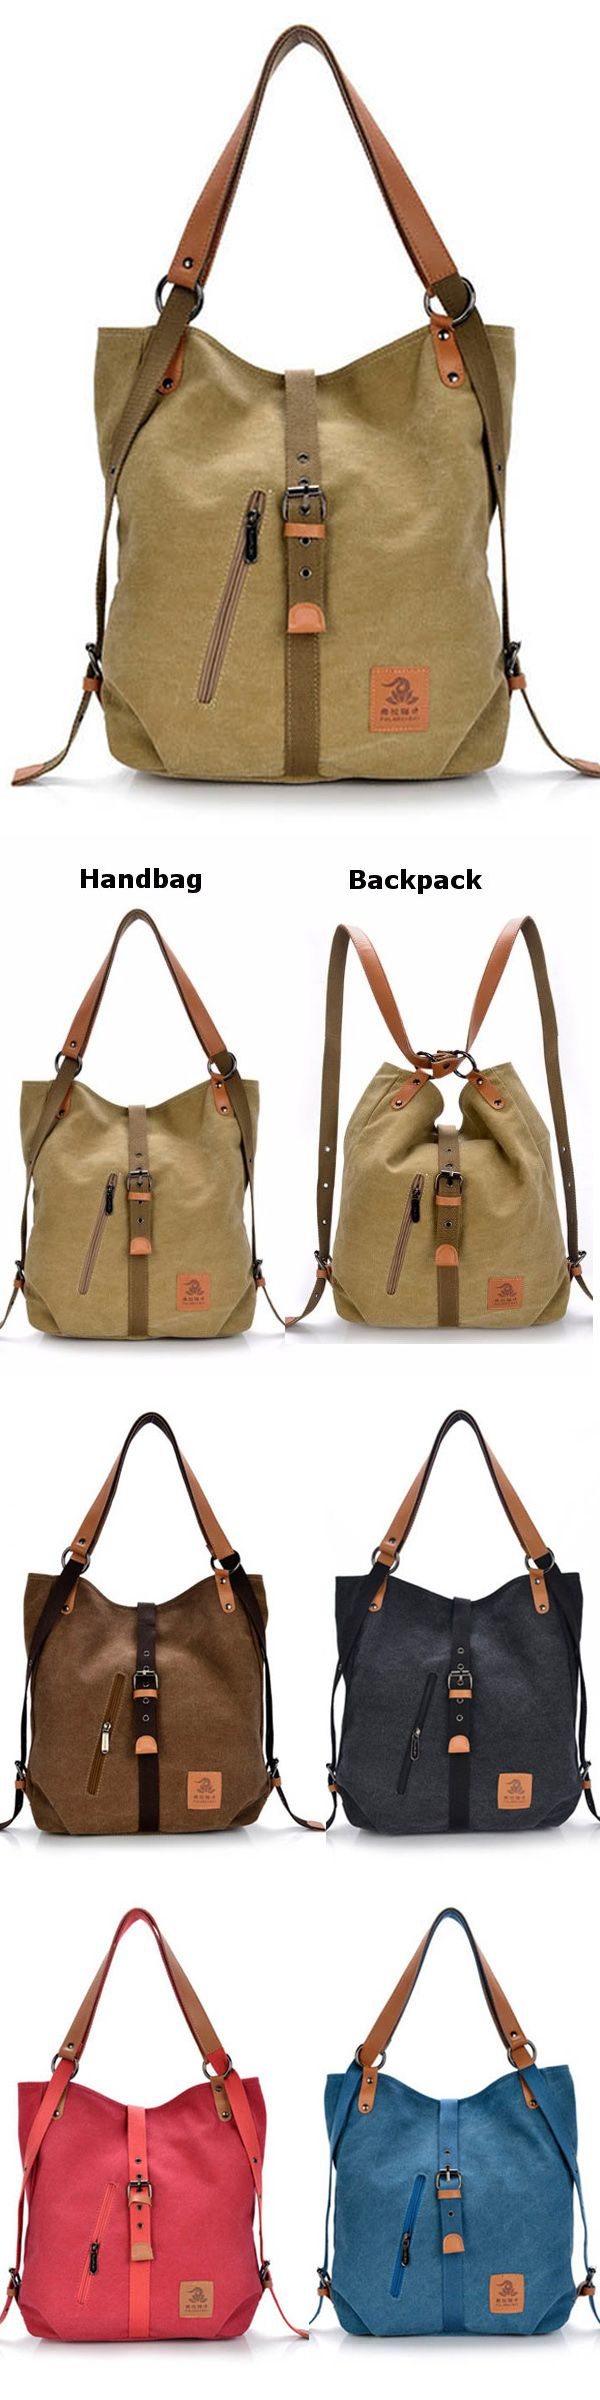 Us 28 66 Women Canvas Casual Multifunctional Microfiber Leather Large Capacity Handbag Shoulder Bags Backpack